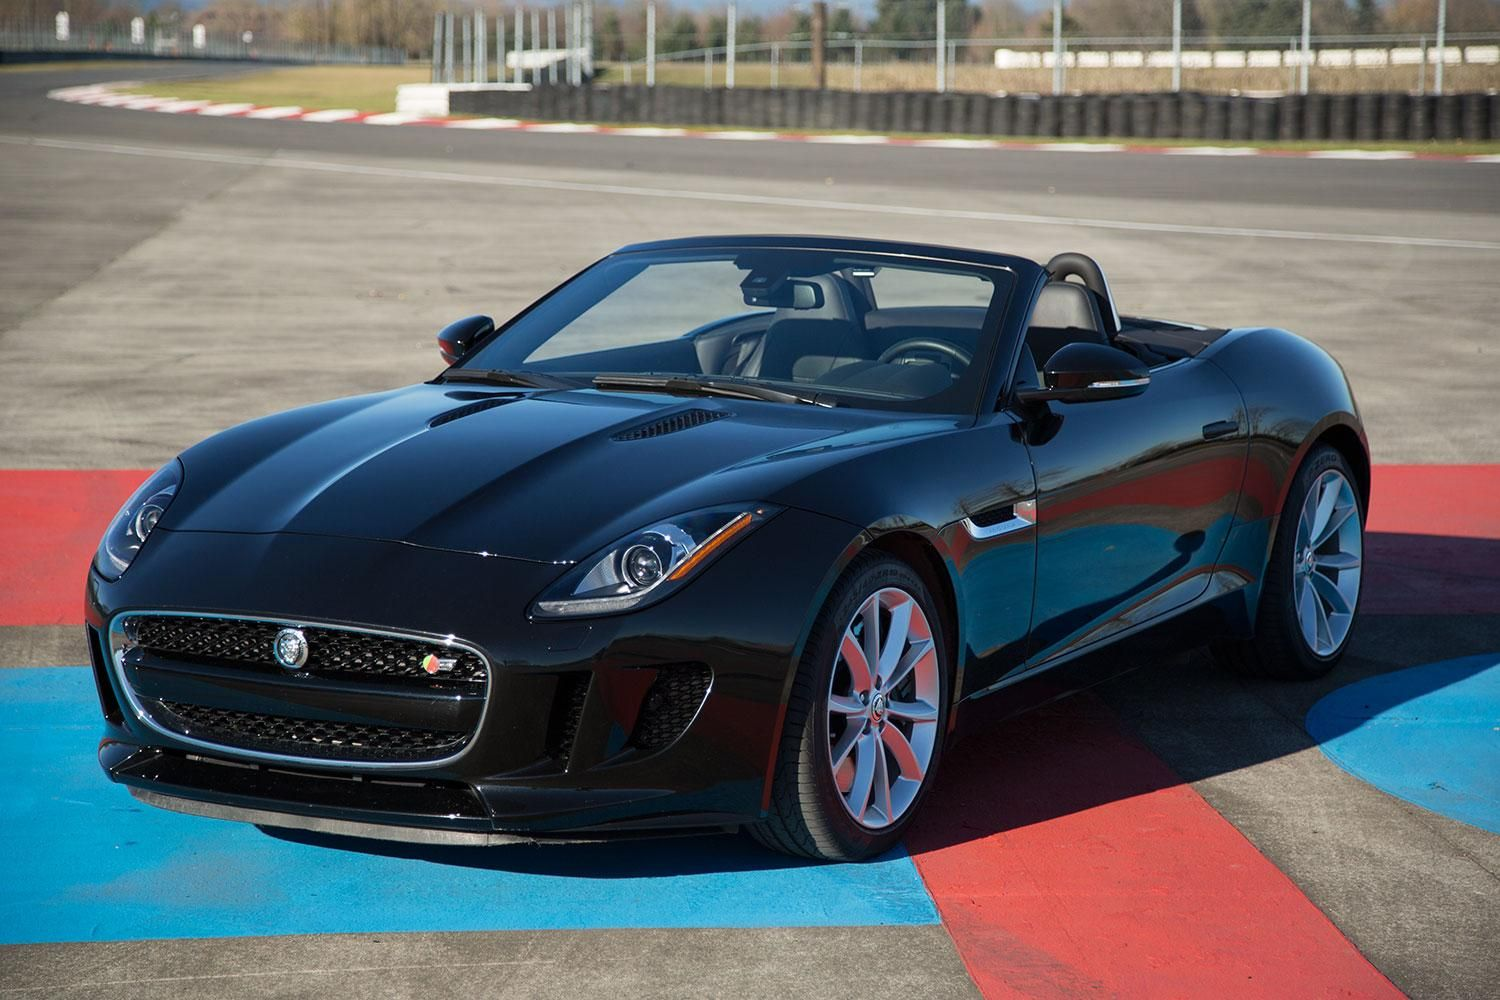 Jaguar F Type Convertible HD Wallpapers #Jaguar, #JaguarFTypeConvertible # Jaguar   Http: